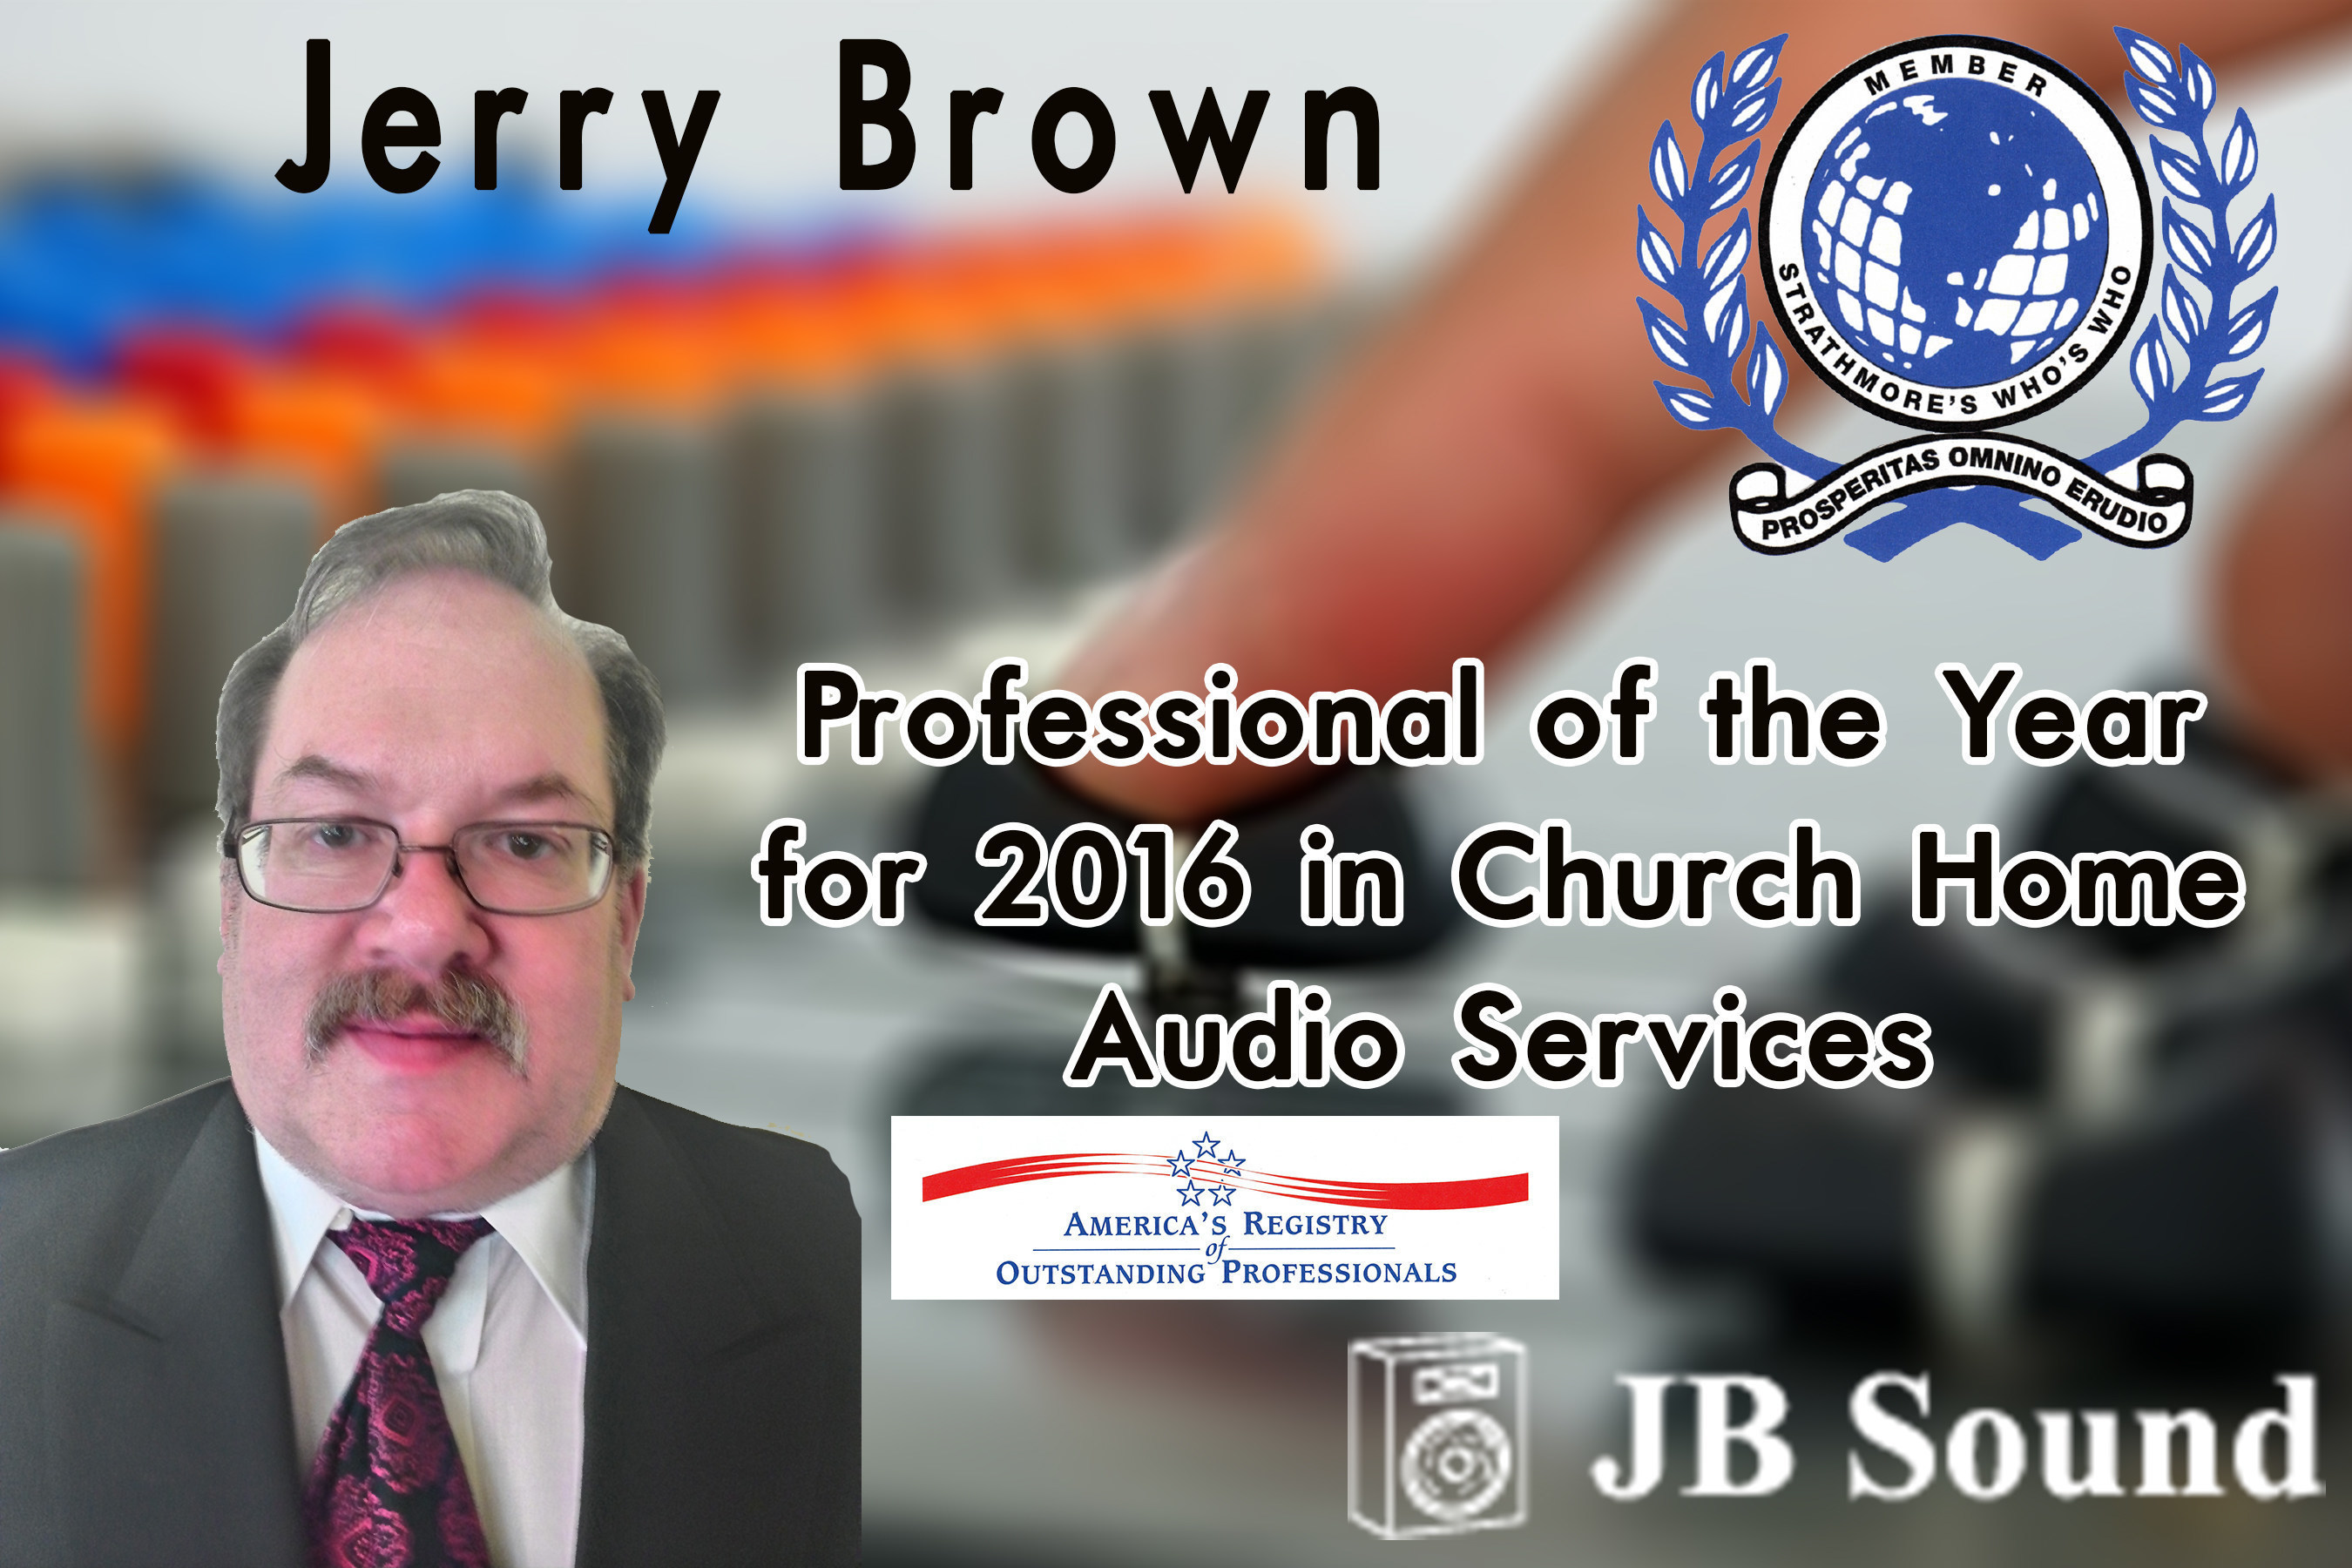 Jerry Brown of JB Sound Has Been Named Professional of the Year (2016) in Church Home Audio Services